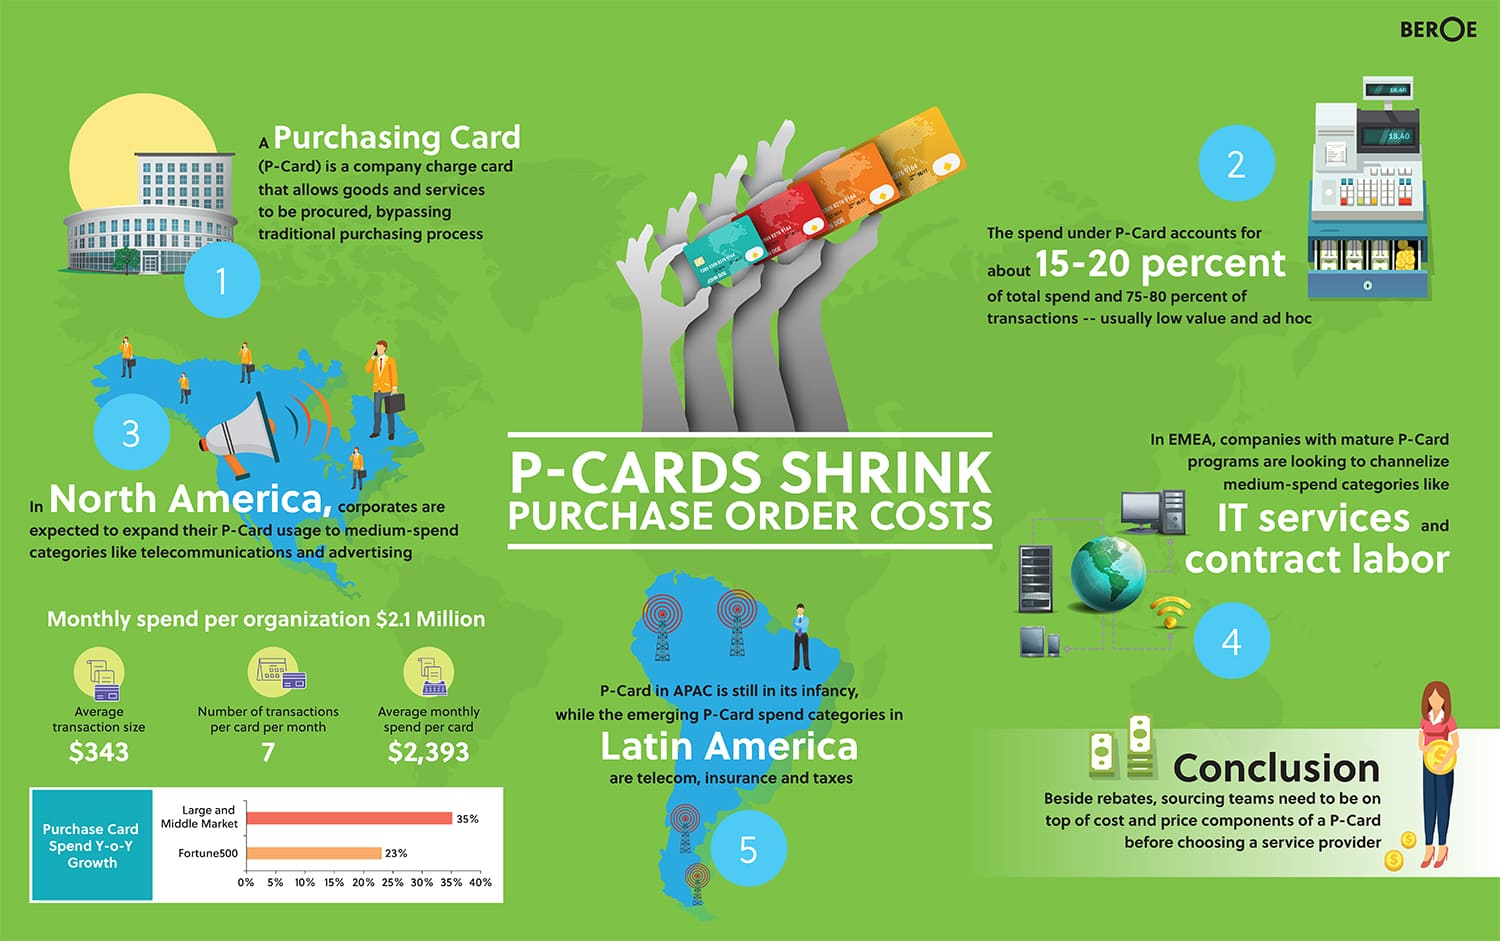 P-Cards help reduce processing costs of Purchase Orders